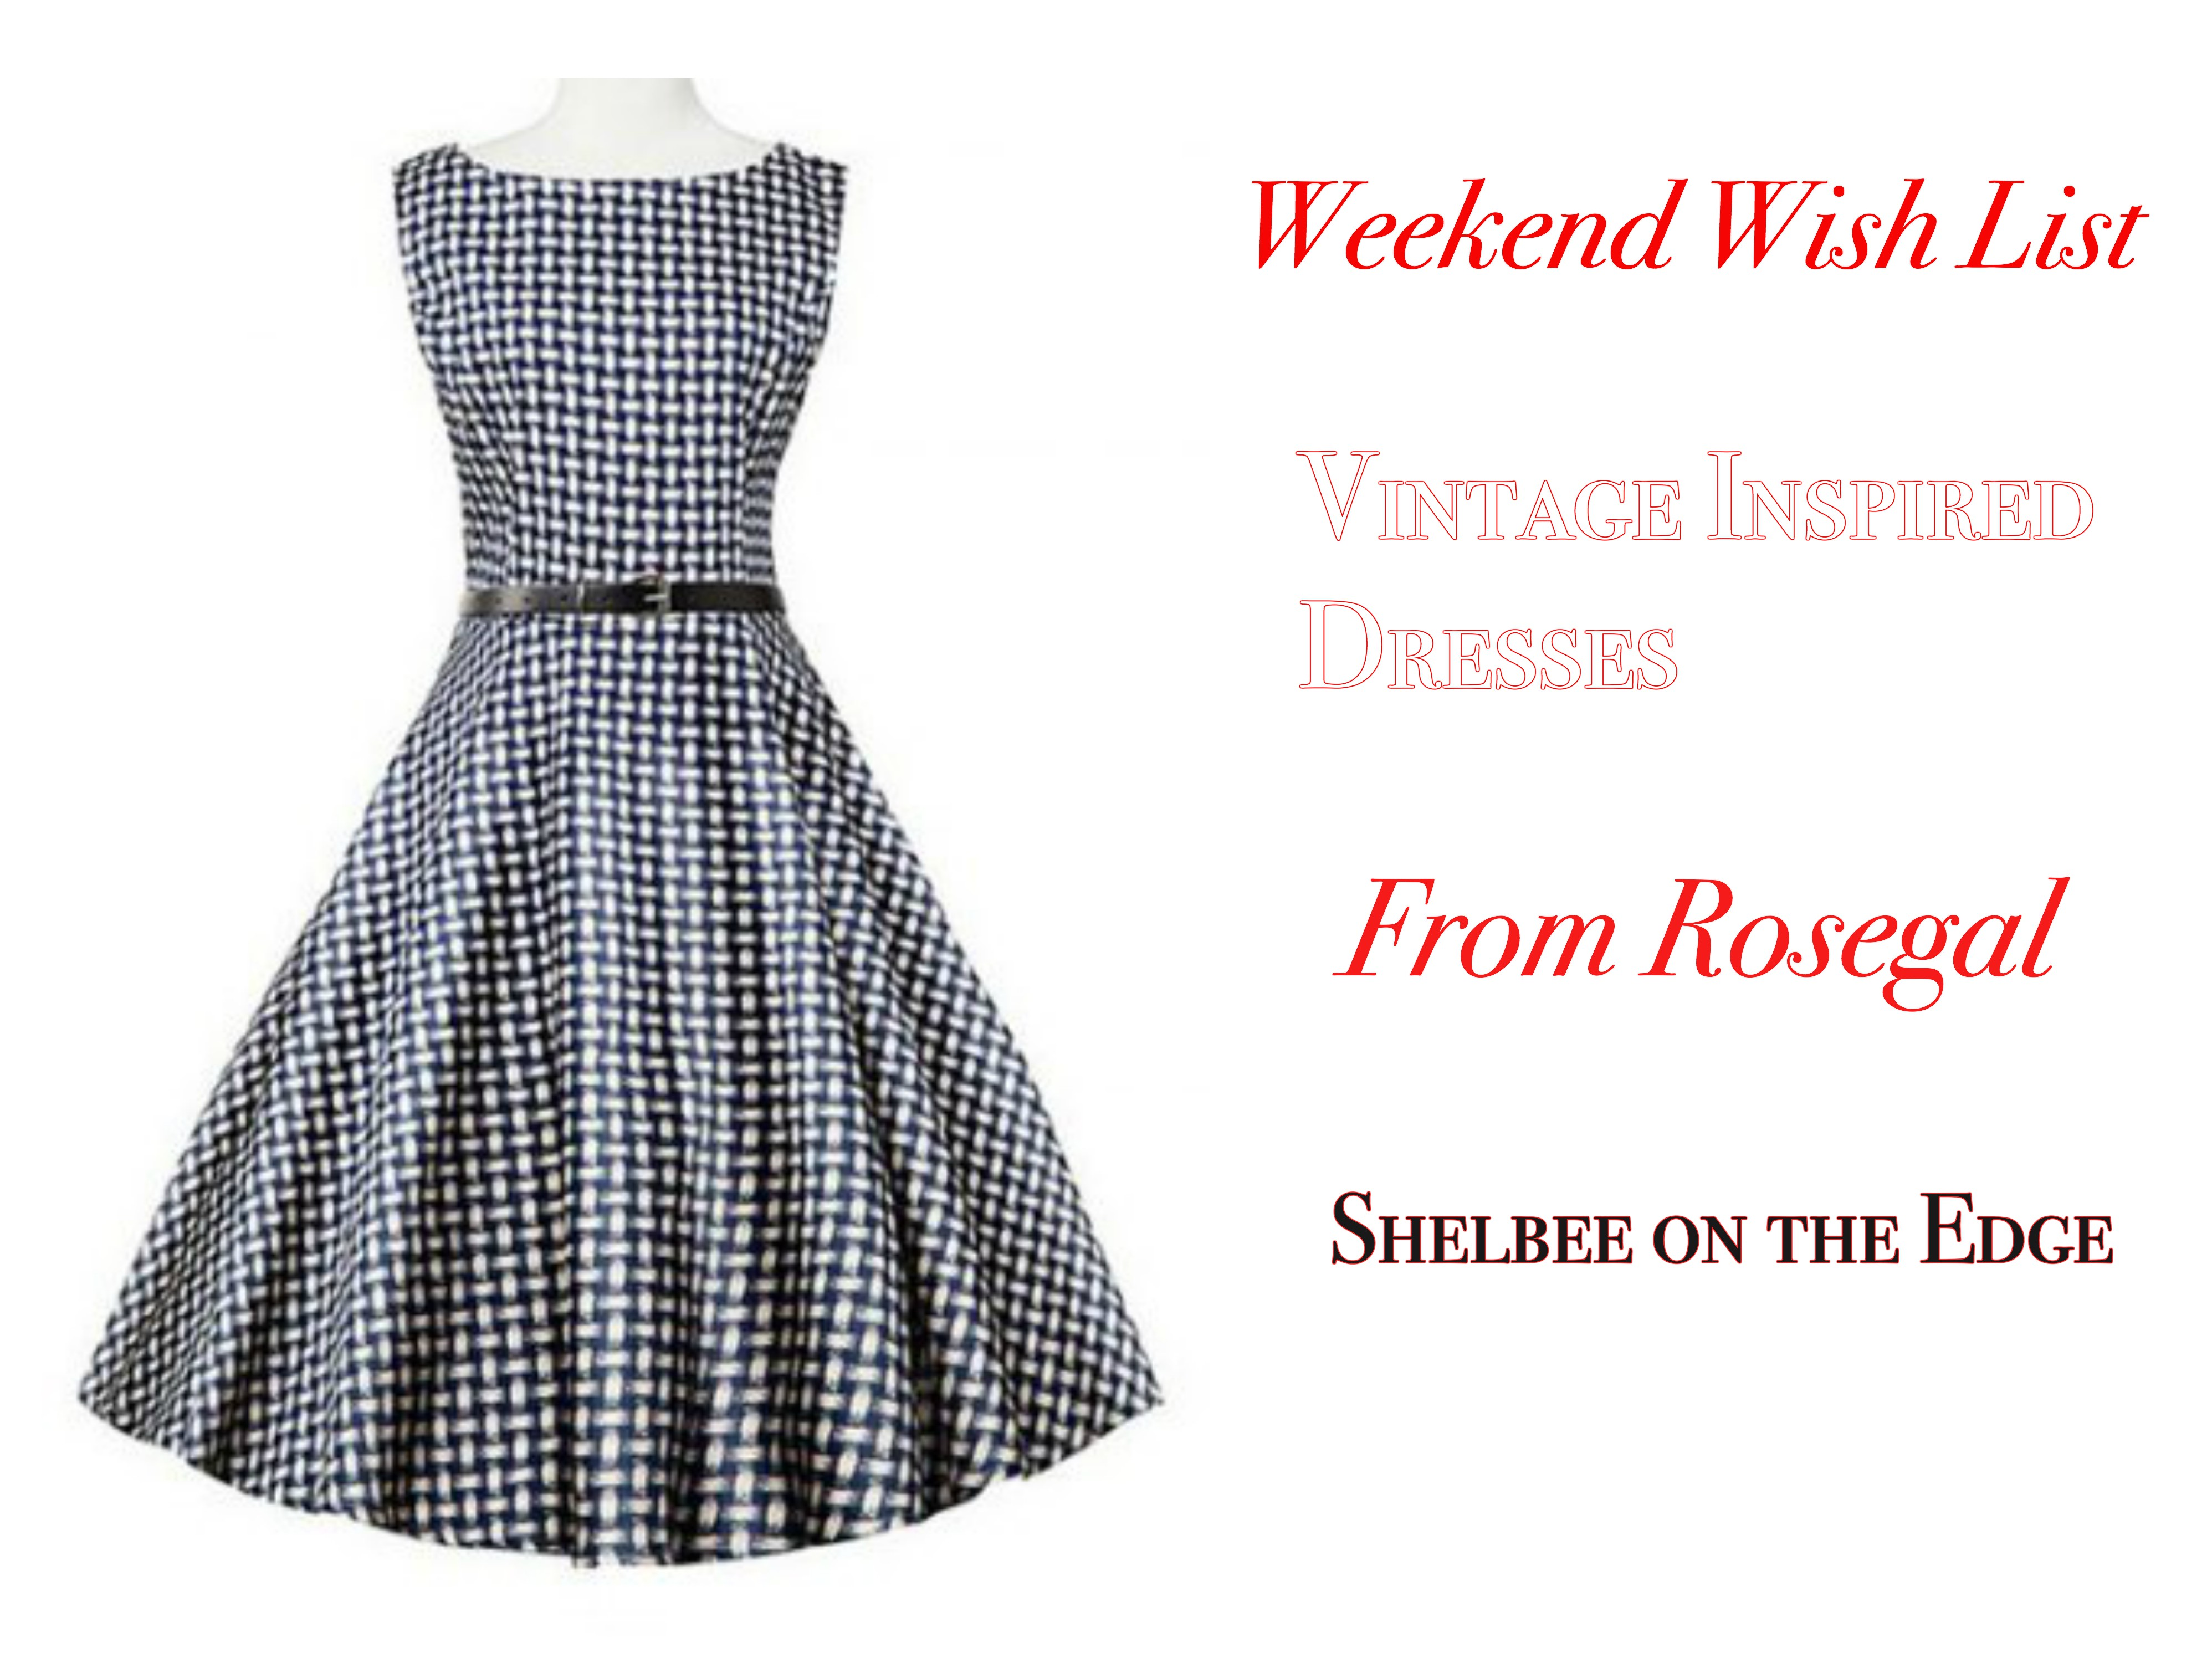 Weekend Wish List: Vintage Inspired Dresses from Rosegal